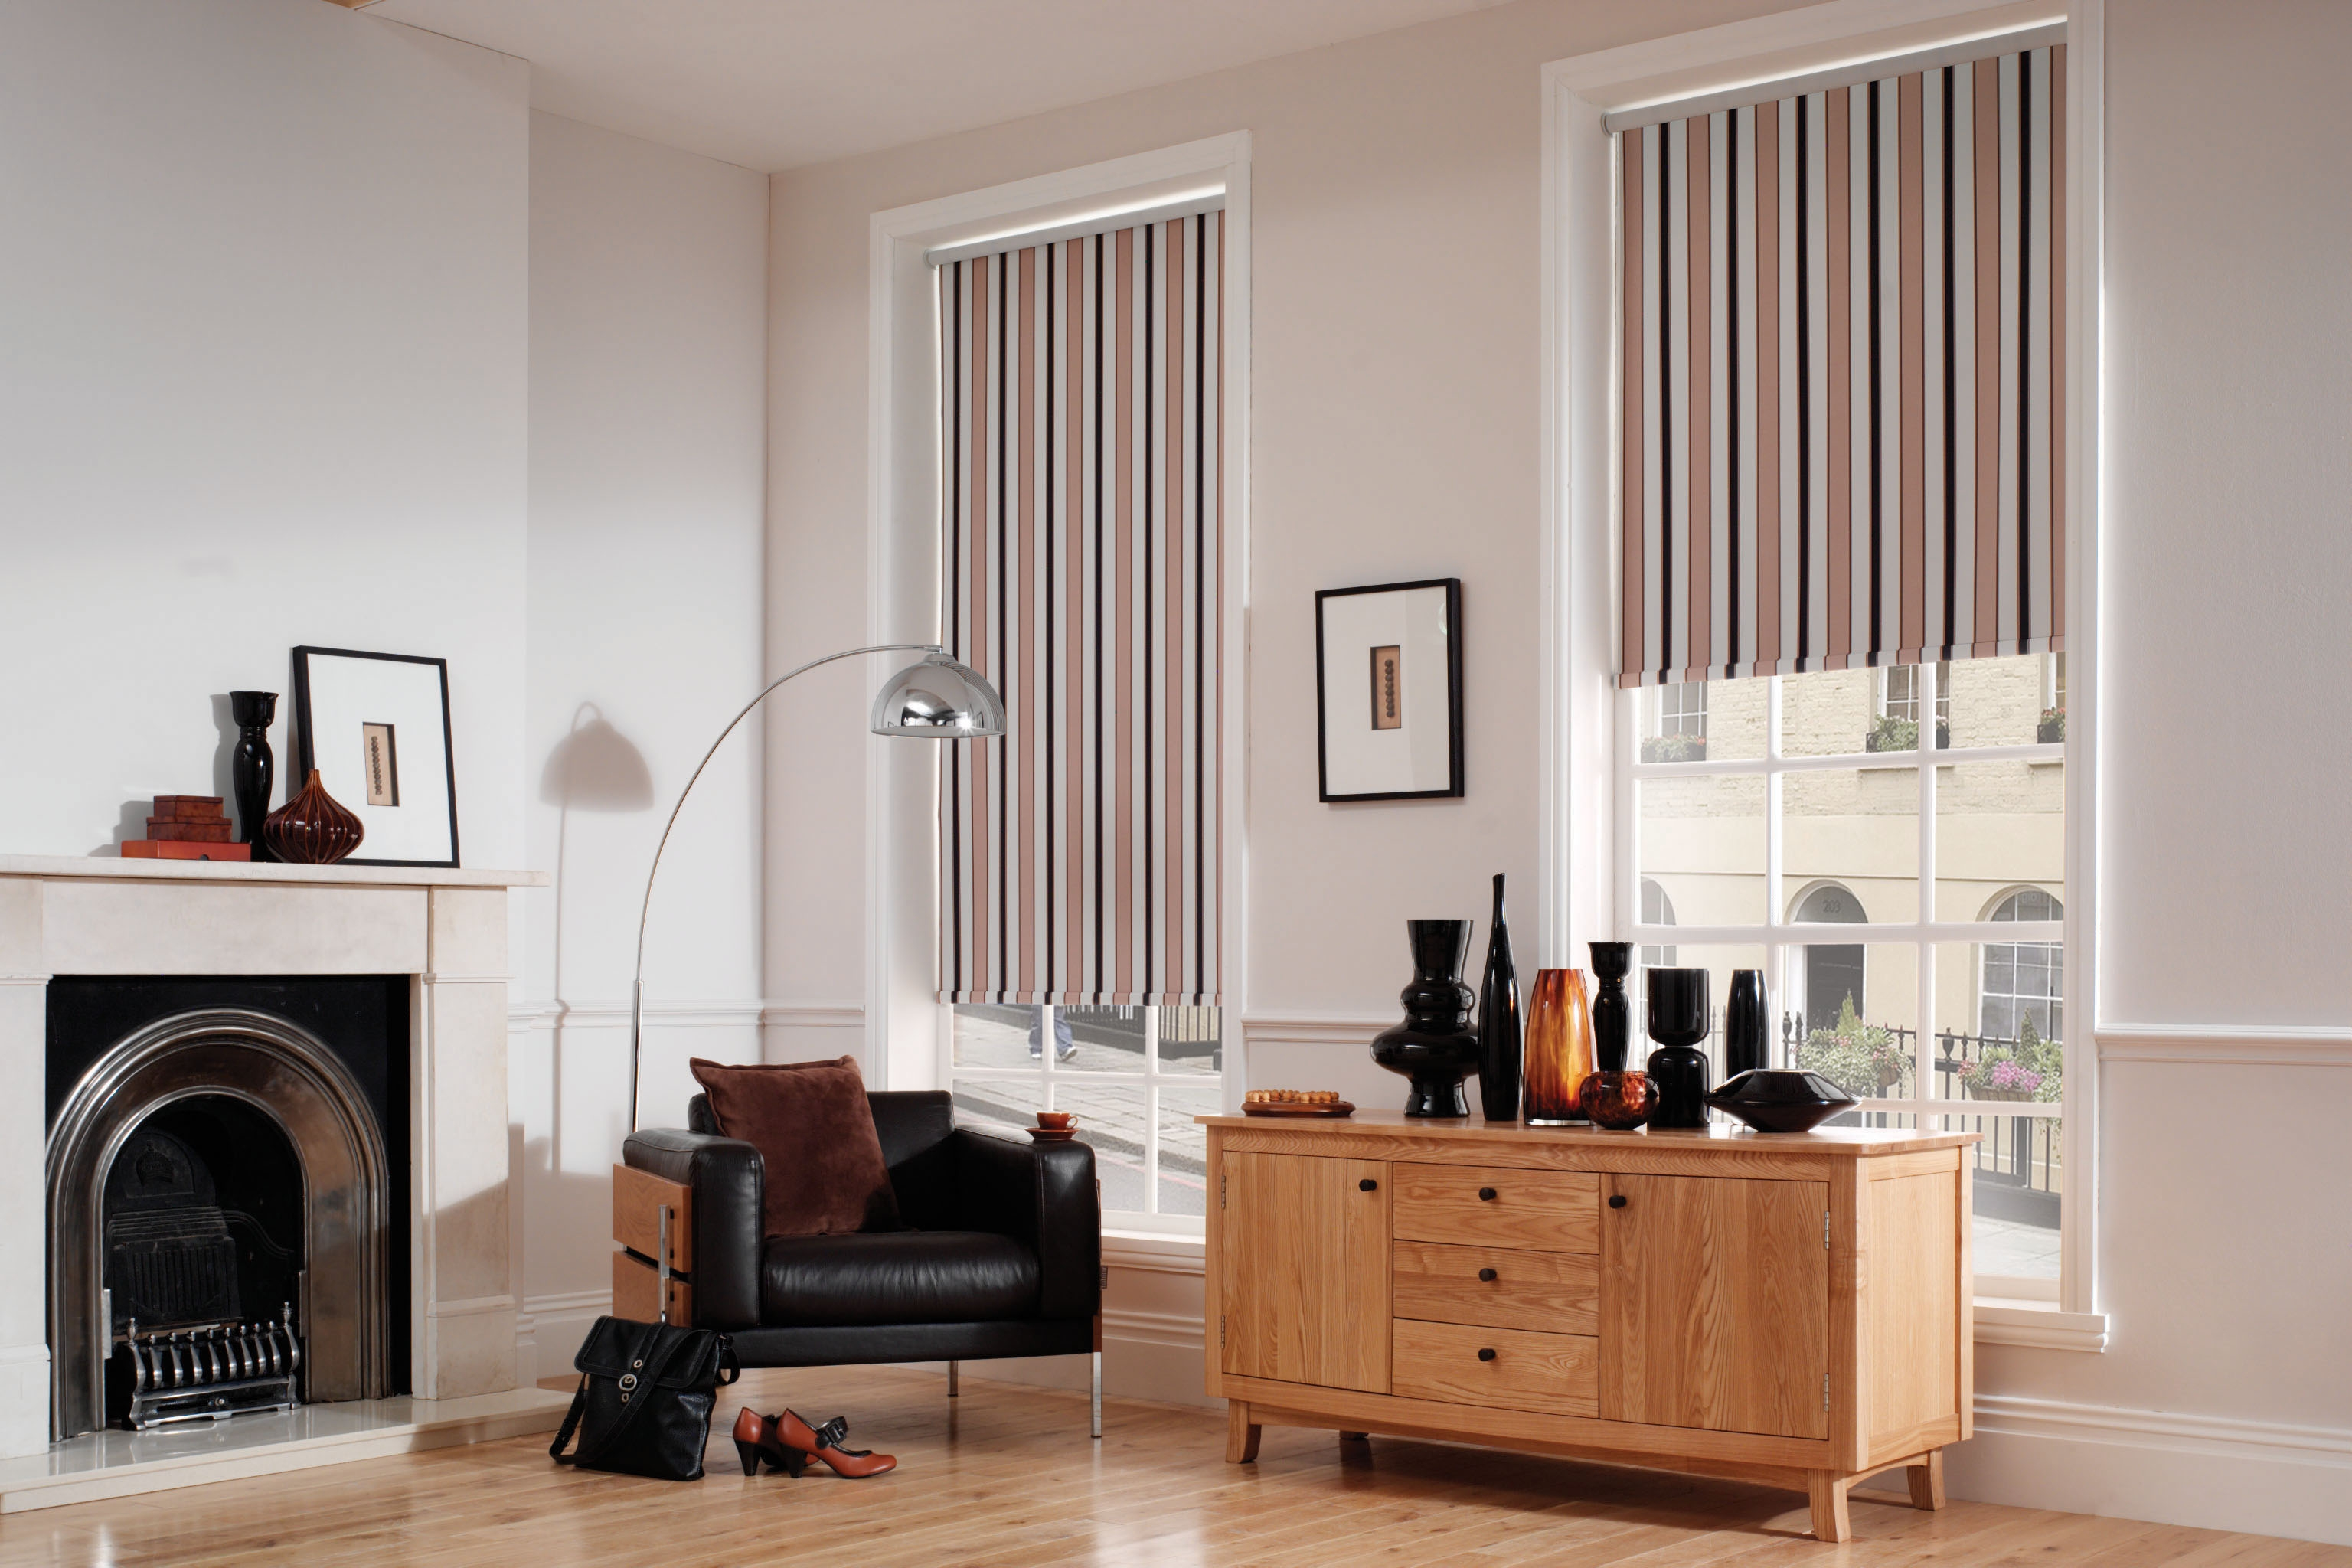 Inside Out Blinds Blinds Luton Blackout Blinds Luton Blind With Luxury Roller Blinds (Image 10 of 15)